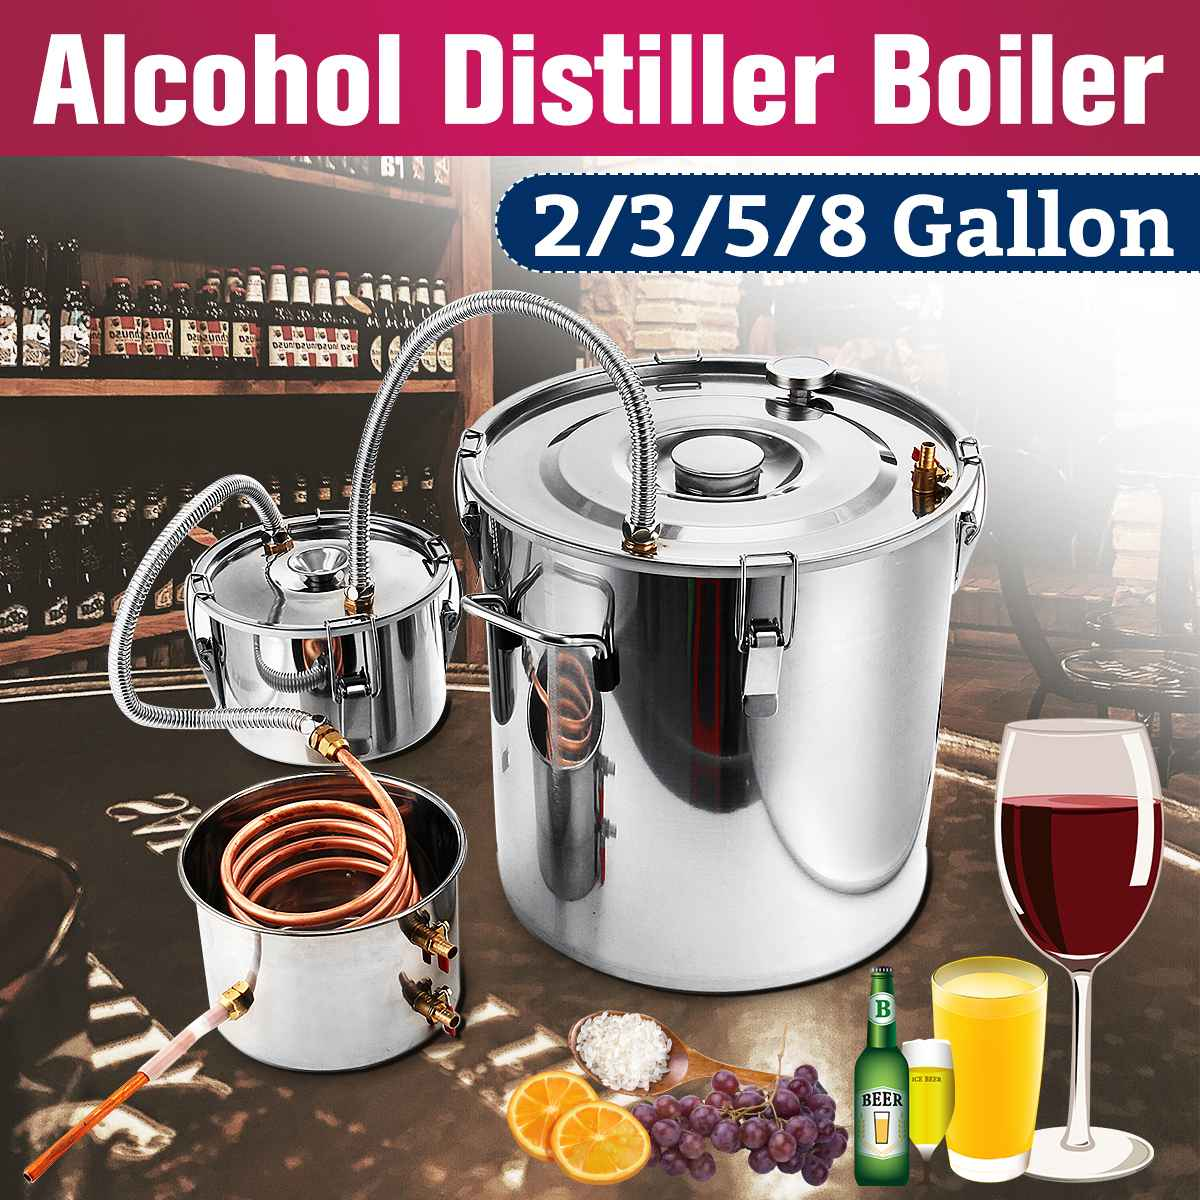 2/3/5/8 Gallon DIY Home Brew Distiller Moonshine Alcohol Still Stainless Copper Water Wine Essential Oil Brewing Kit With Cooli2/3/5/8 Gallon DIY Home Brew Distiller Moonshine Alcohol Still Stainless Copper Water Wine Essential Oil Brewing Kit With Cooli